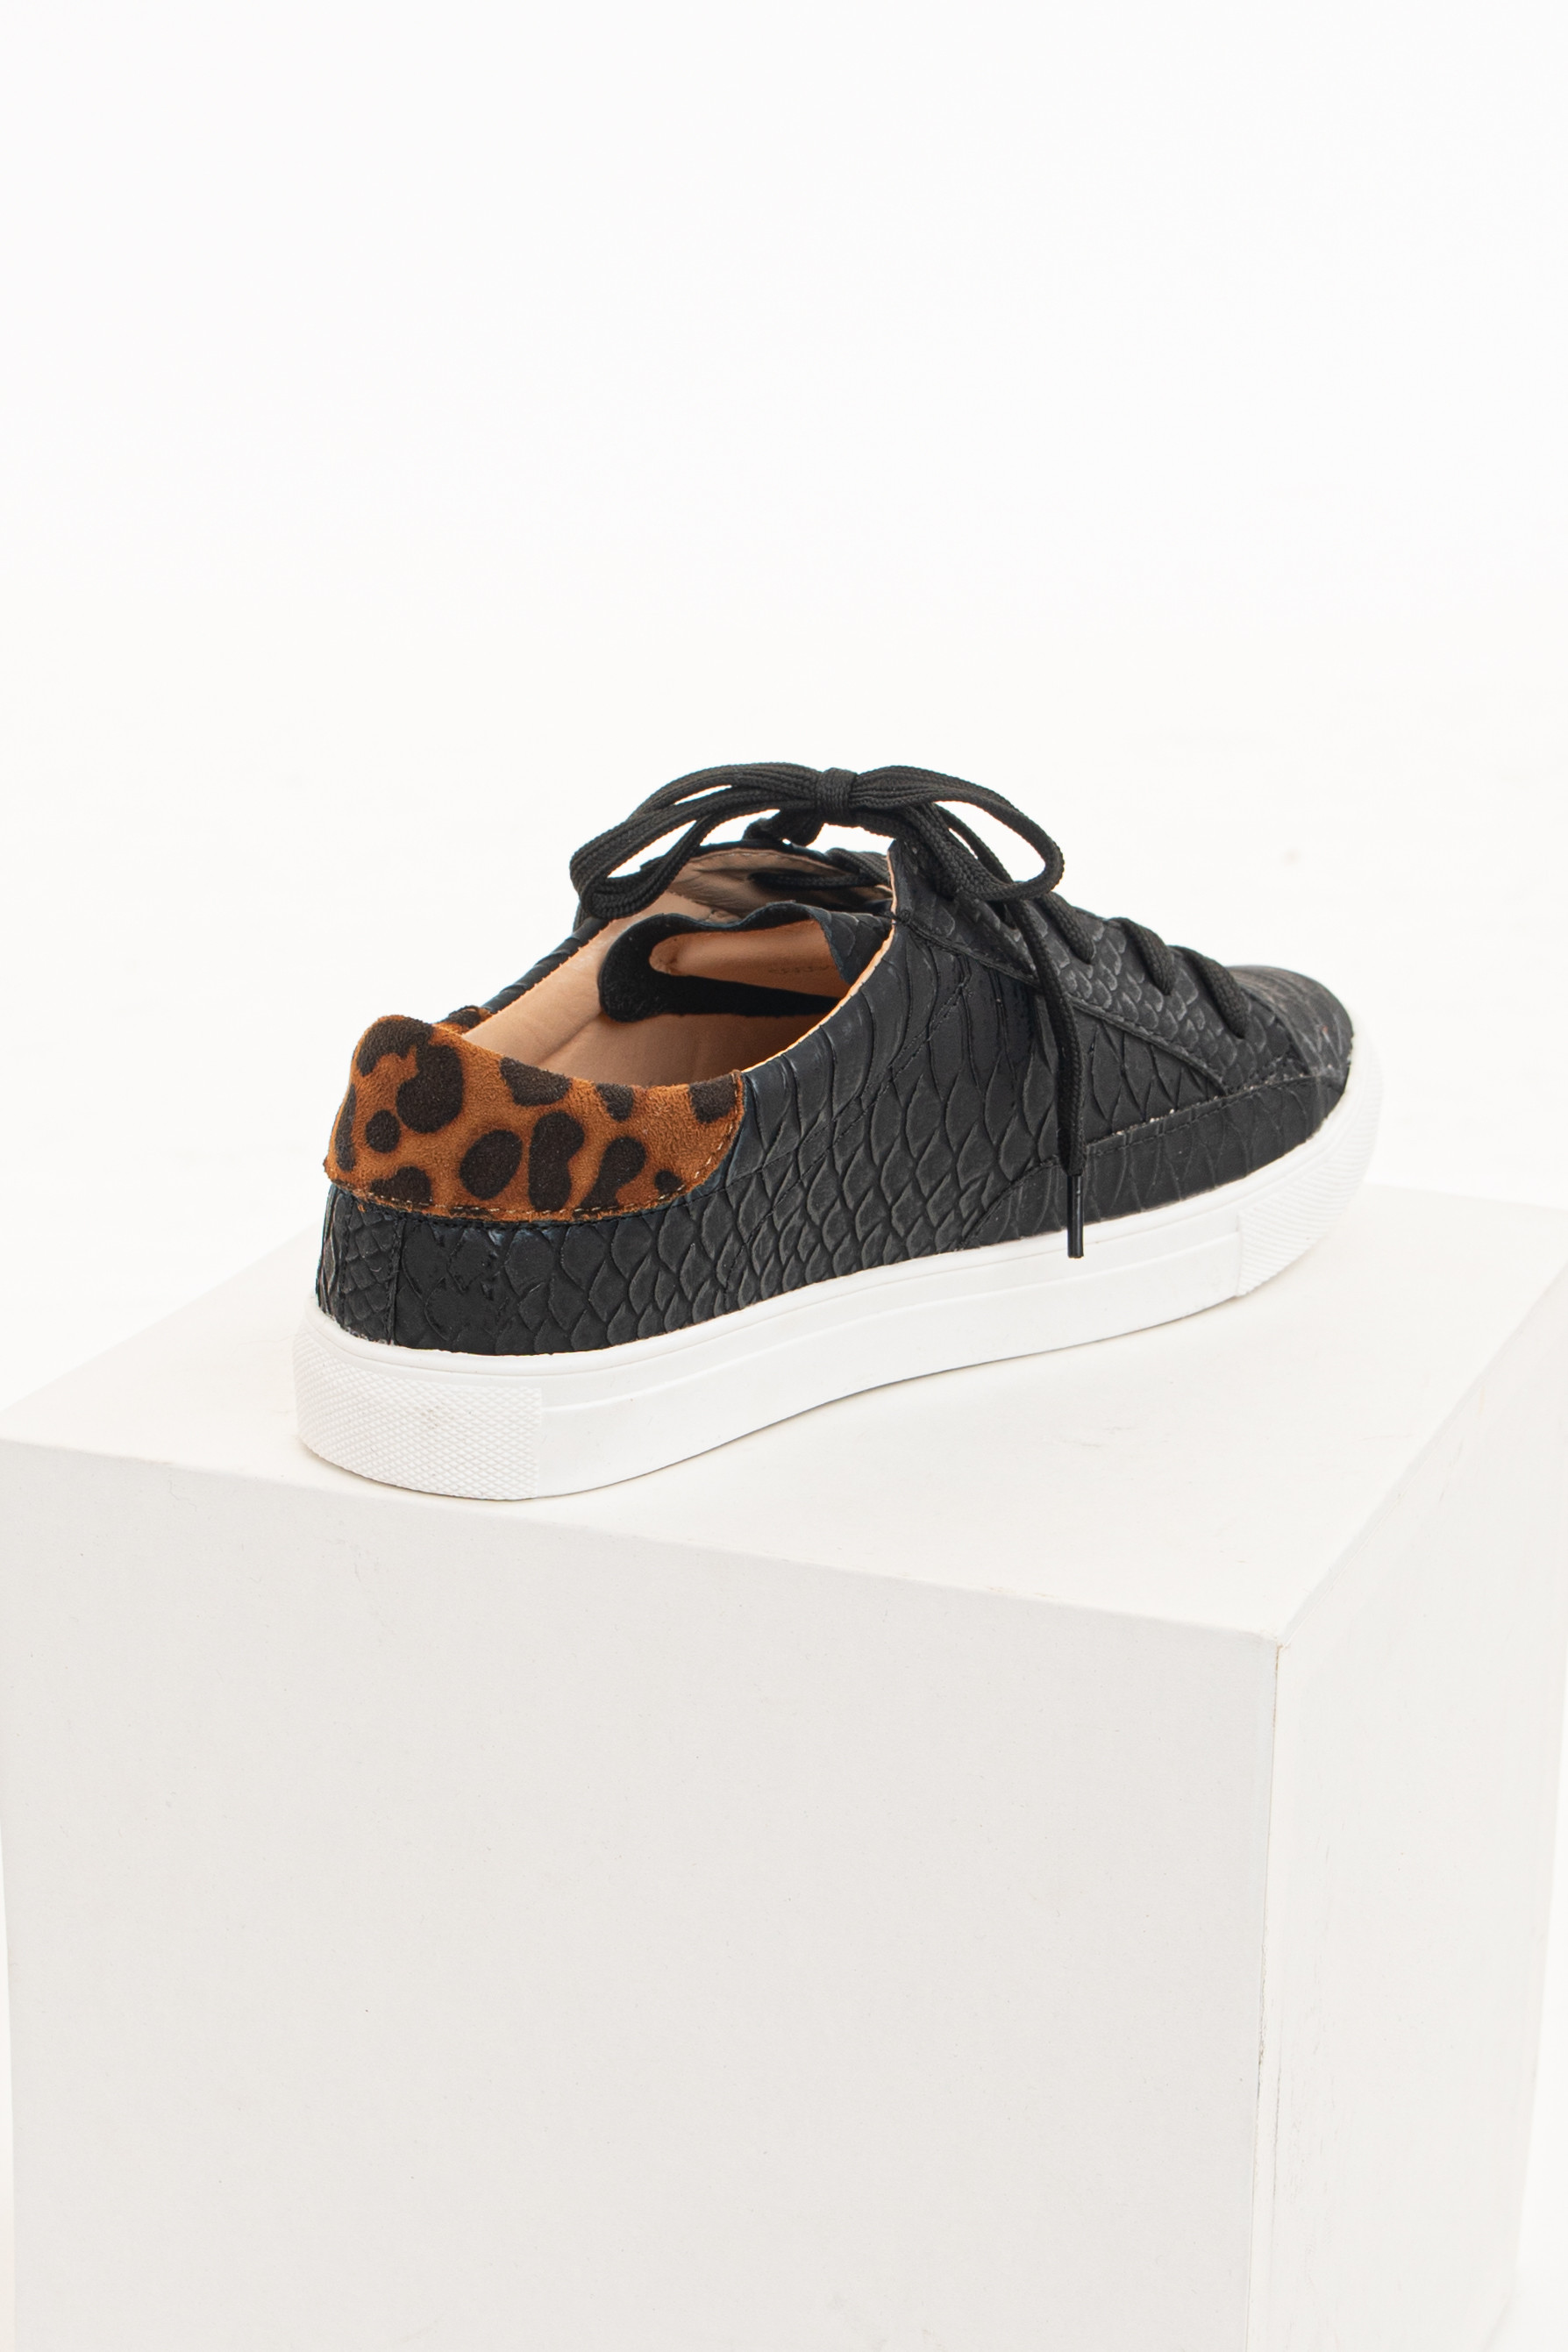 Matte Black Textured Sneakers with Leopard Print Details